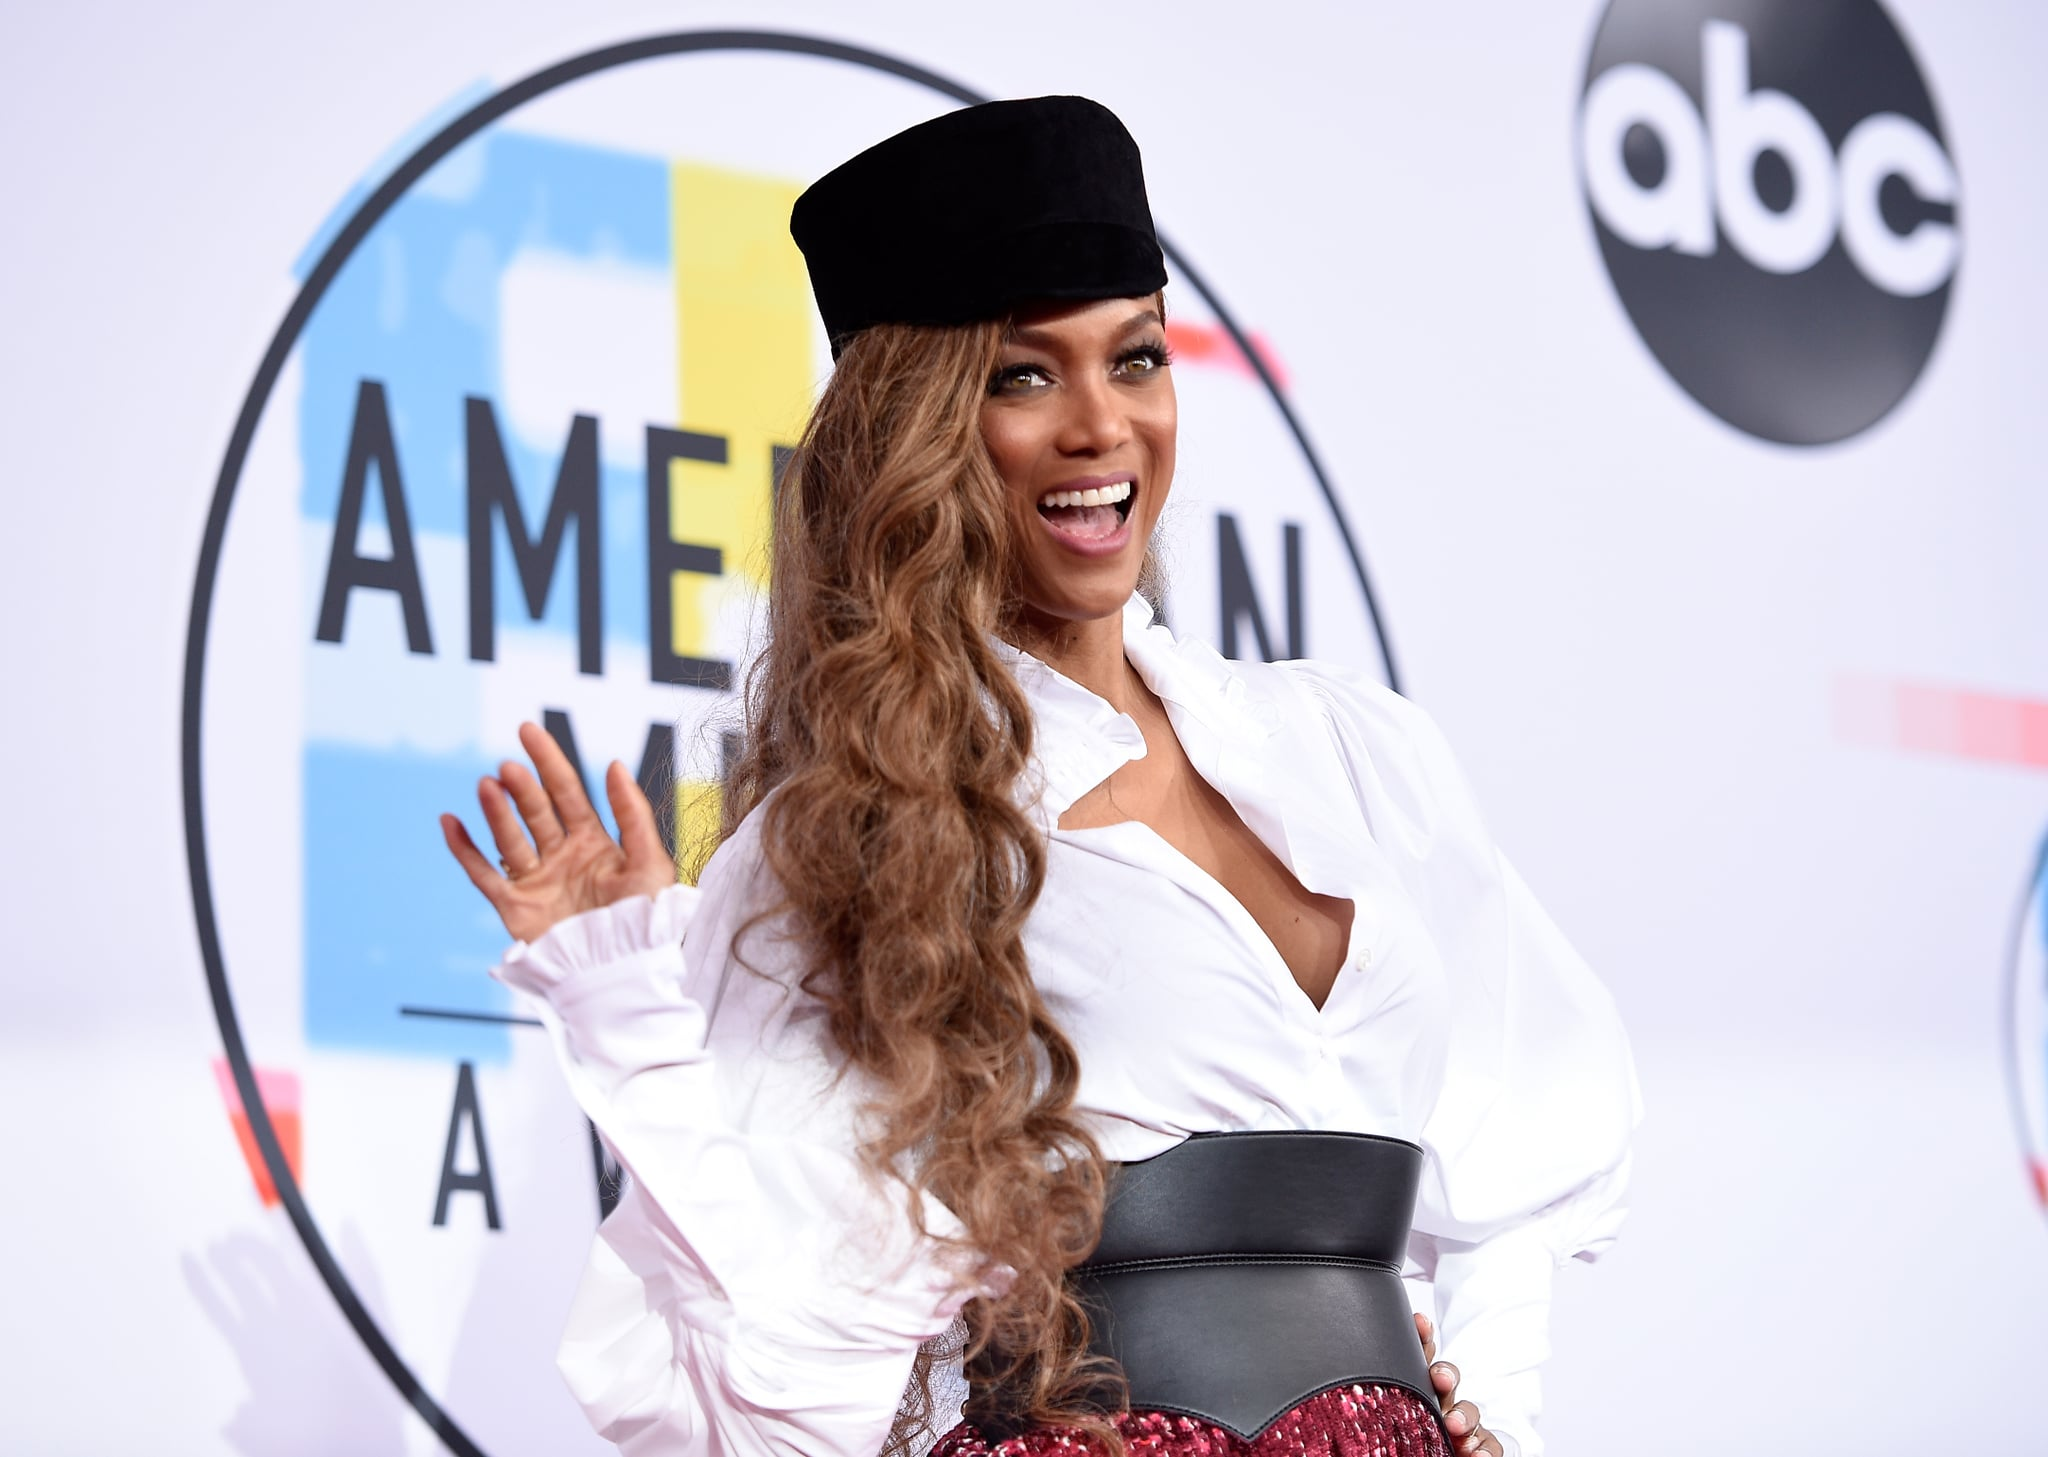 LOS ANGELES, CA - OCTOBER 09:  Tyra Banks attends the 2018 American Music Awards at Microsoft Theatre on October 9, 2018 in Los Angeles, California.  (Photo by Kevork Djansezian/Getty Images For dcp)